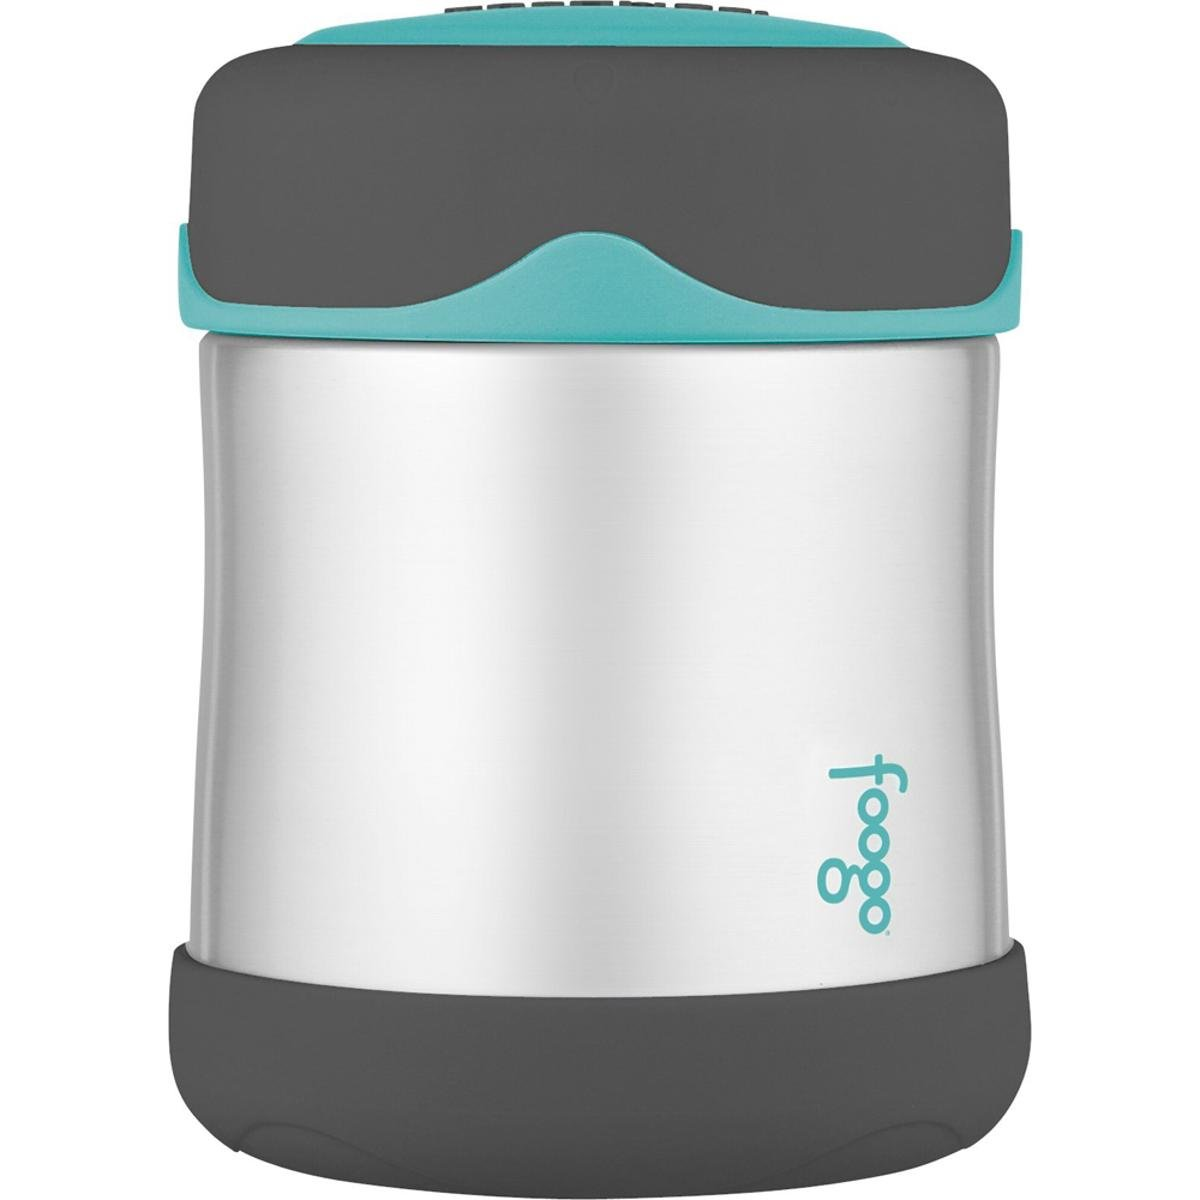 Thermos FOOGO Stainless Steel Food Jar, Charcoal/Teal, 10 Ounce (1, A)